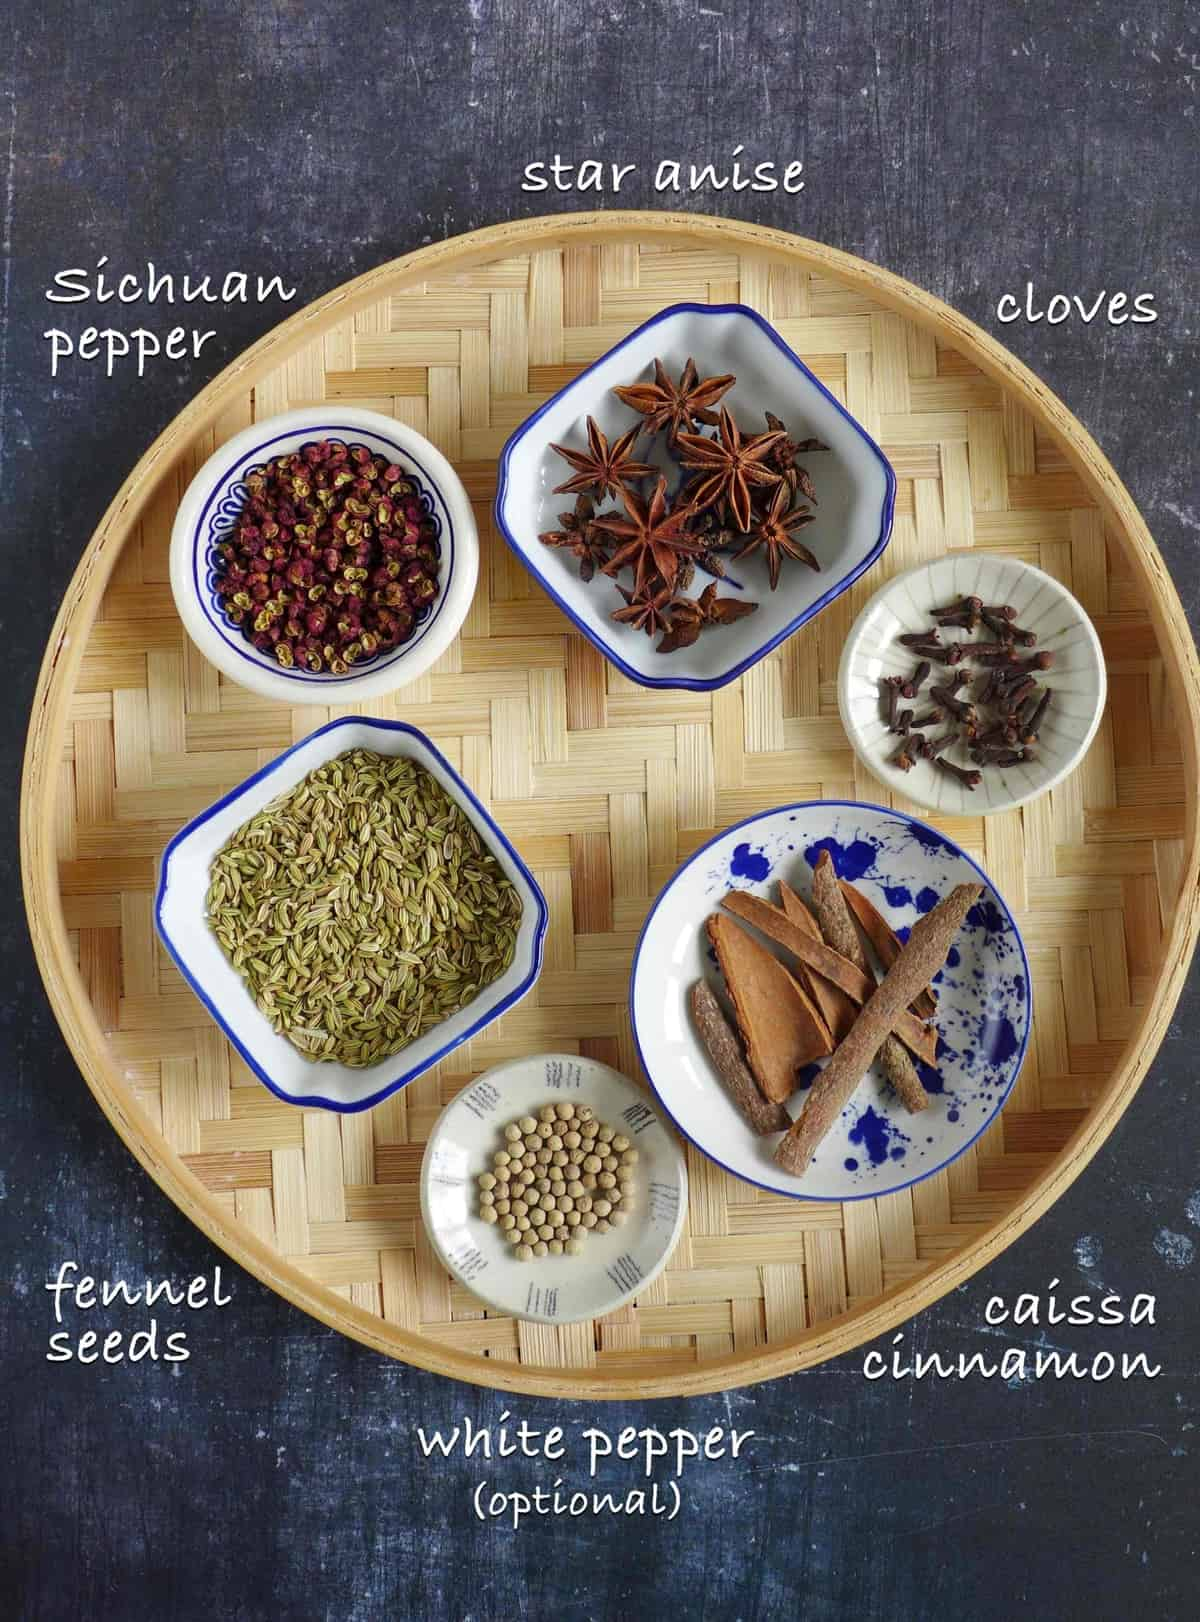 Ingredients for making five spice powder: fennel seeds, star anise, cloves, Sichuan pepper, cassia cinnamon and white pepper.